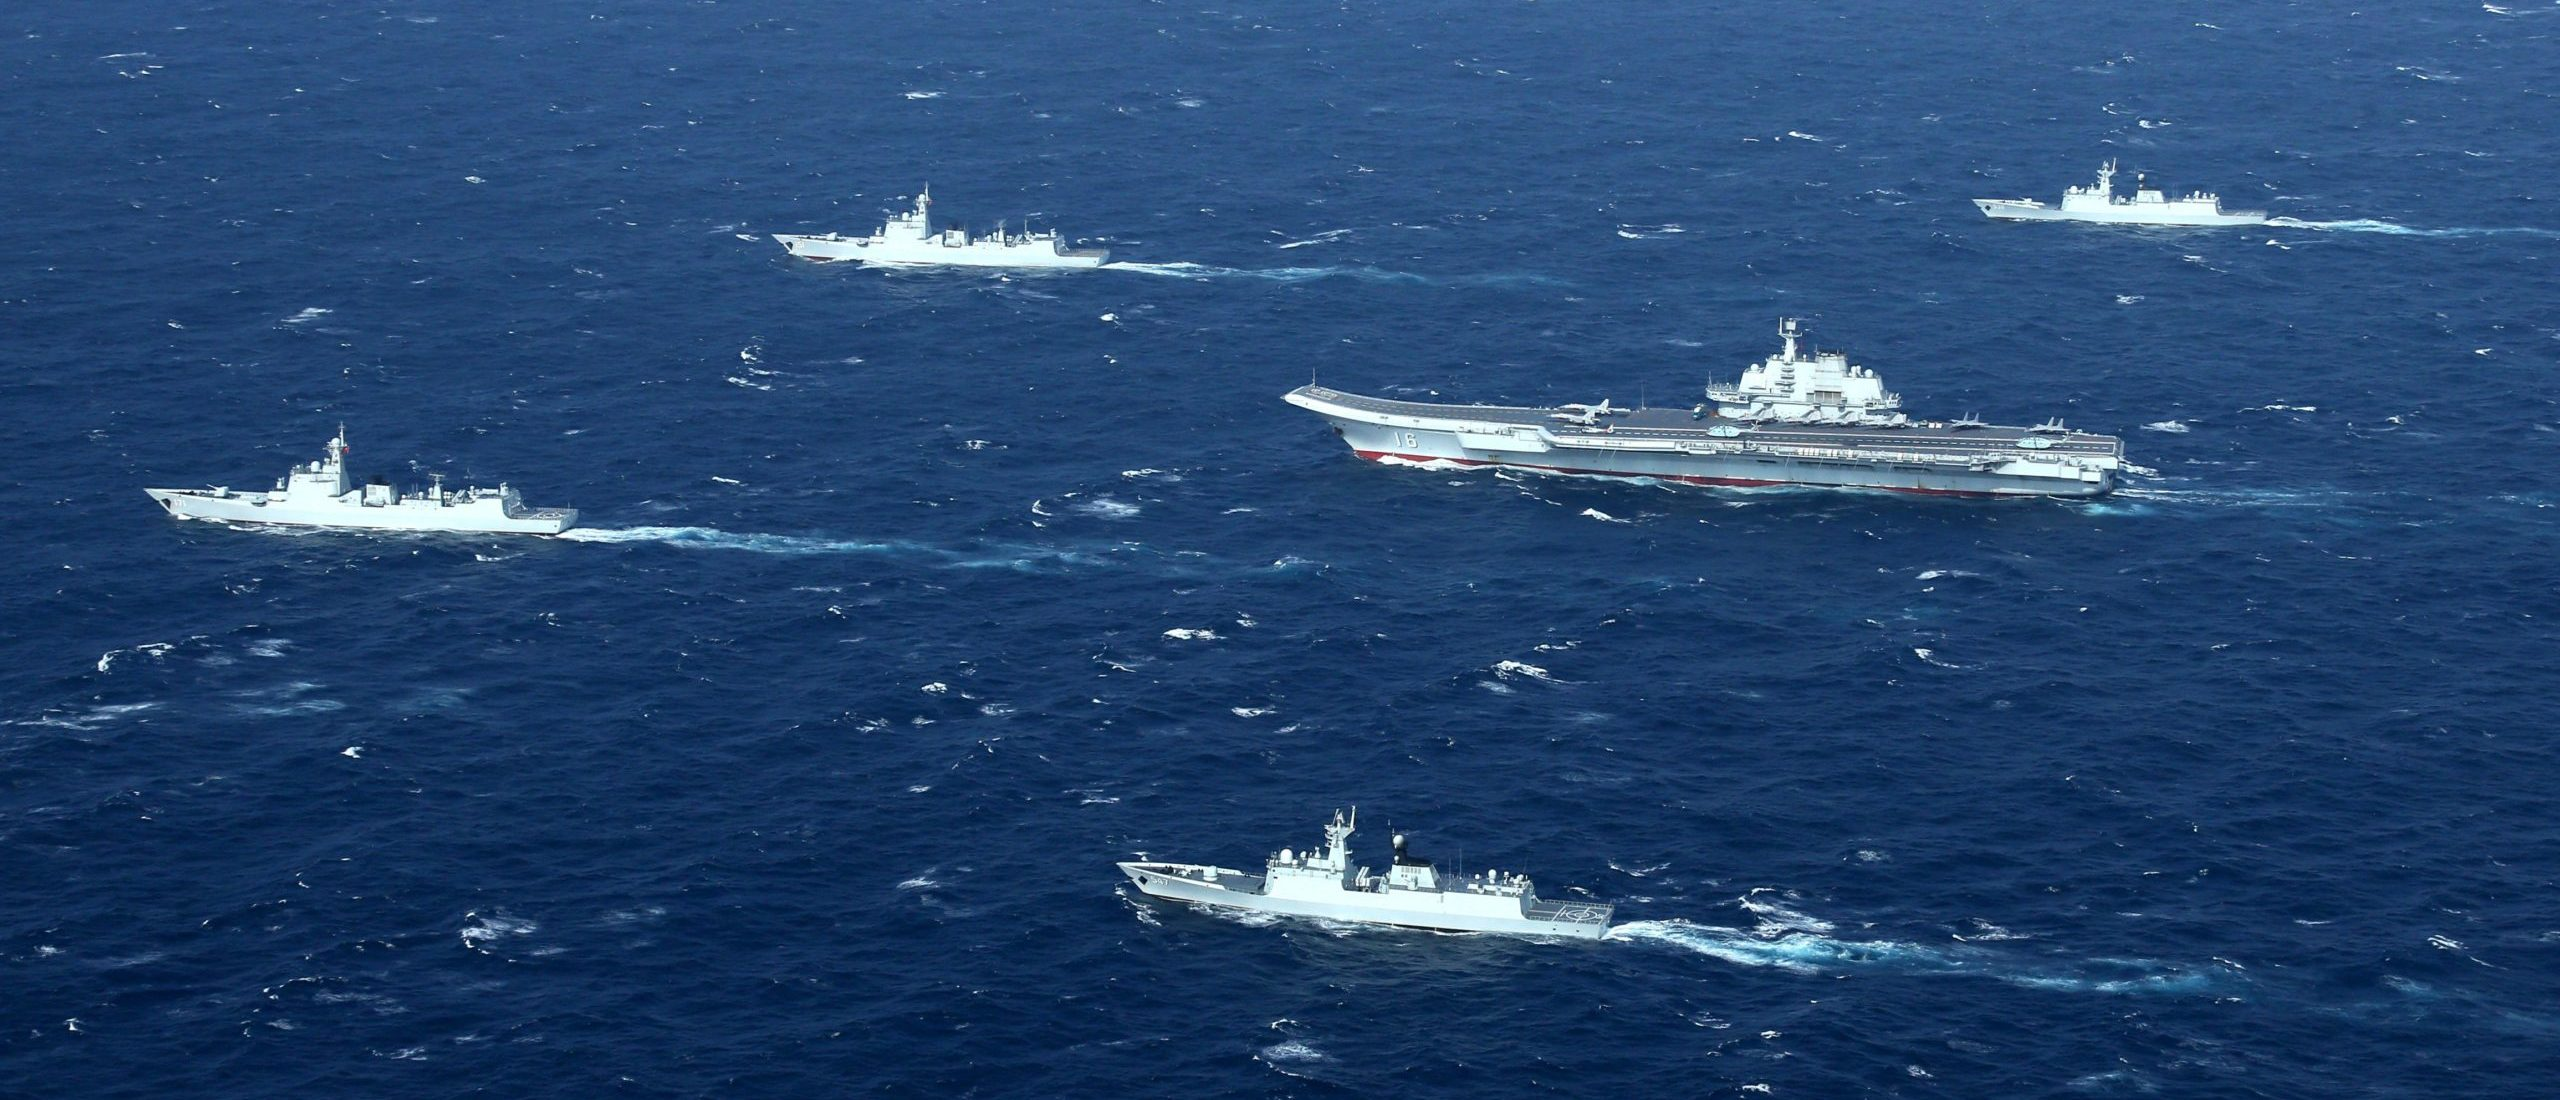 This aerial photo taken on January 2, 2017 shows a Chinese navy formation, including the aircraft carrier Liaoning (C), during military drills in the South China Sea. The aircraft carrier is one of the latest steps in the years-long build-up of China's military, as Beijing seeks greater global power to match its economic might and asserts itself more aggressively in its own backyard. / AFP / STR / China OUT (Photo credit should read STR/AFP via Getty Images)